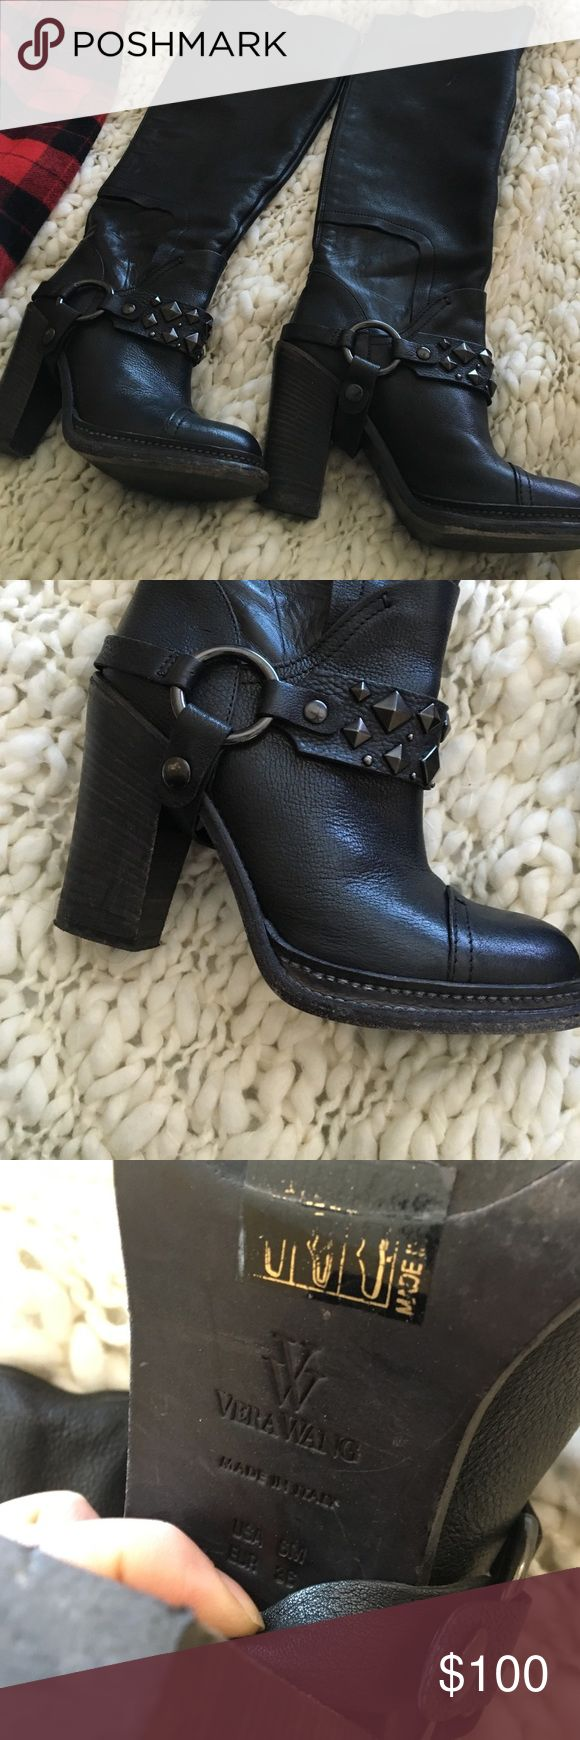 Vera wang black Moto boots Size 6 black heel Vera wang leather black boots. With stud belt around the arch. In good condition. Worn a couple of times., Vera Wang Shoes Combat & Moto Boots